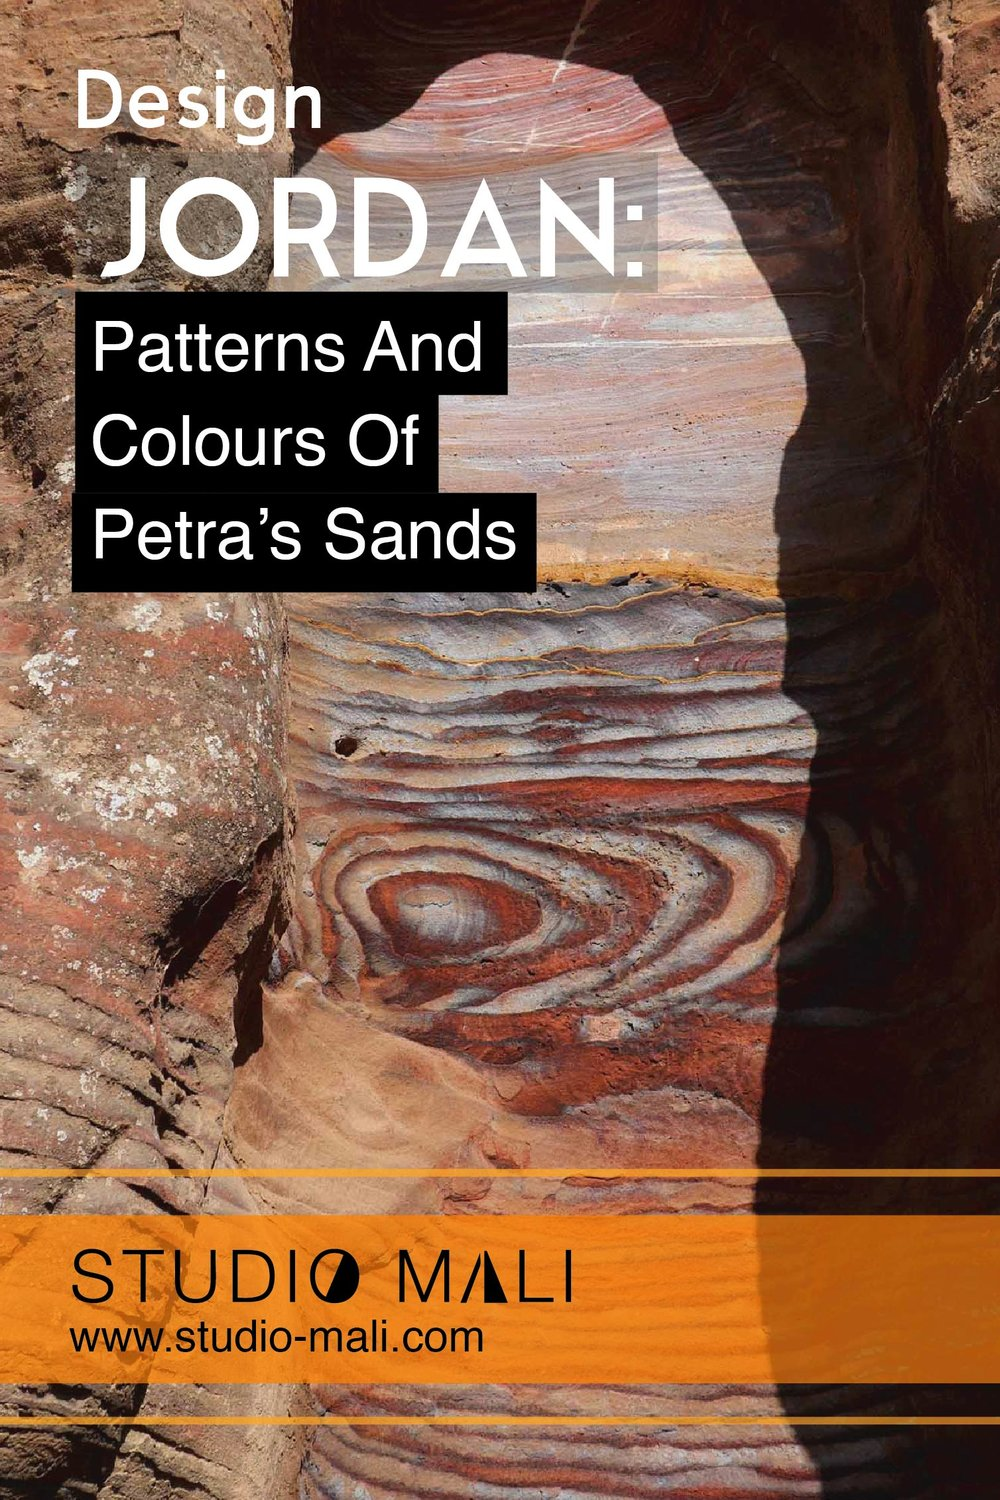 Jordan - Patterns And Colour In Petra's Sands, by Studio Mali.jpg